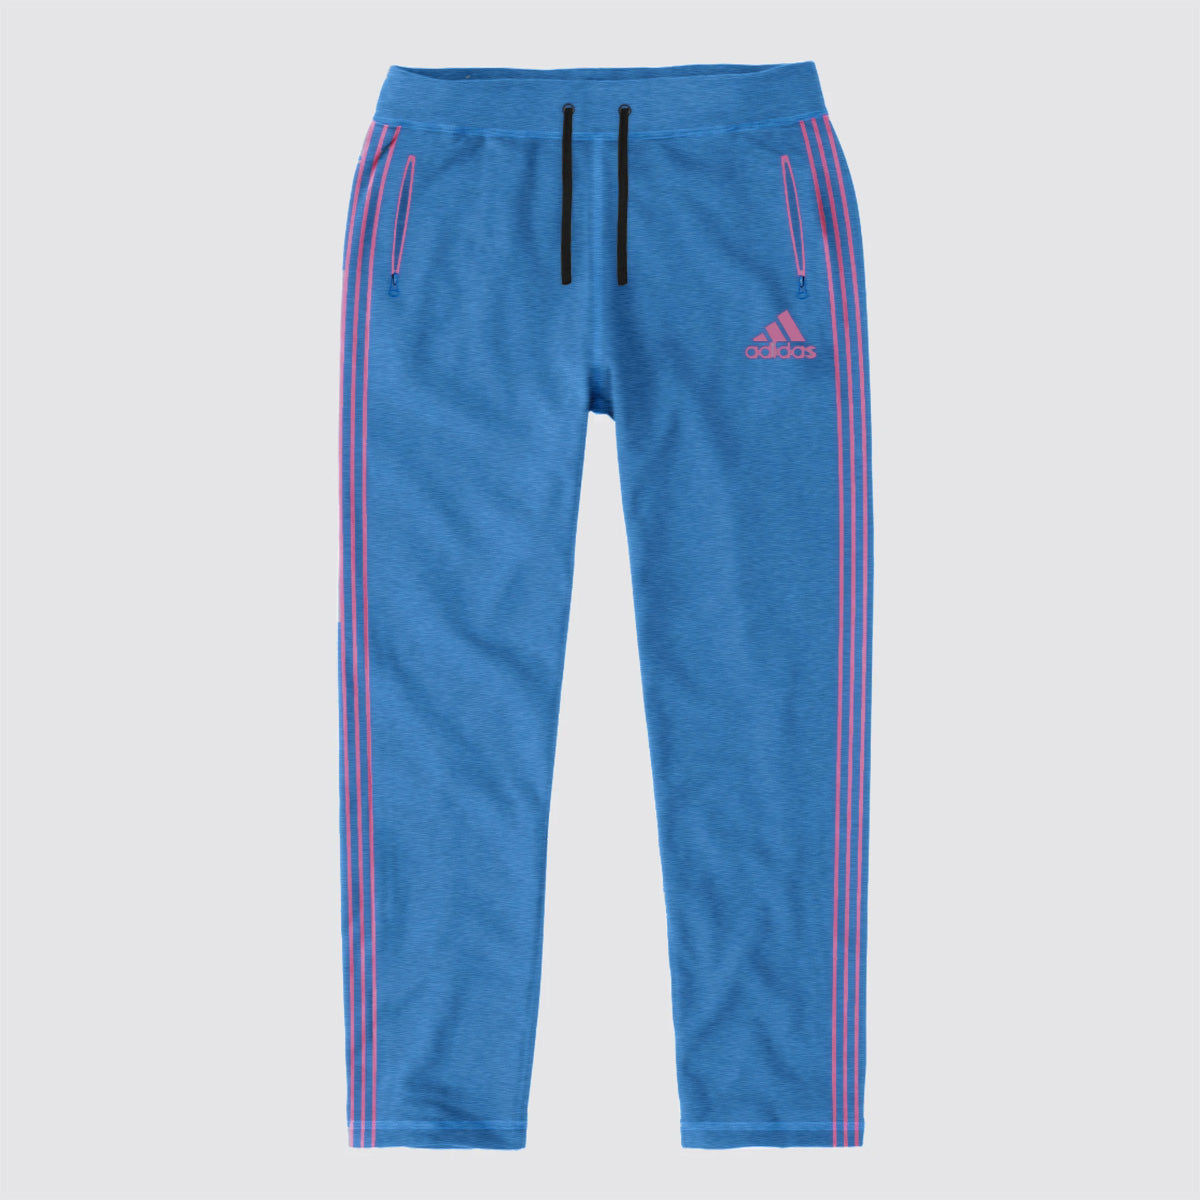 Adidas Single Jersey Regular Fit Trouser For Men-Dark Sky Melange with Pink Stripe-BE10923